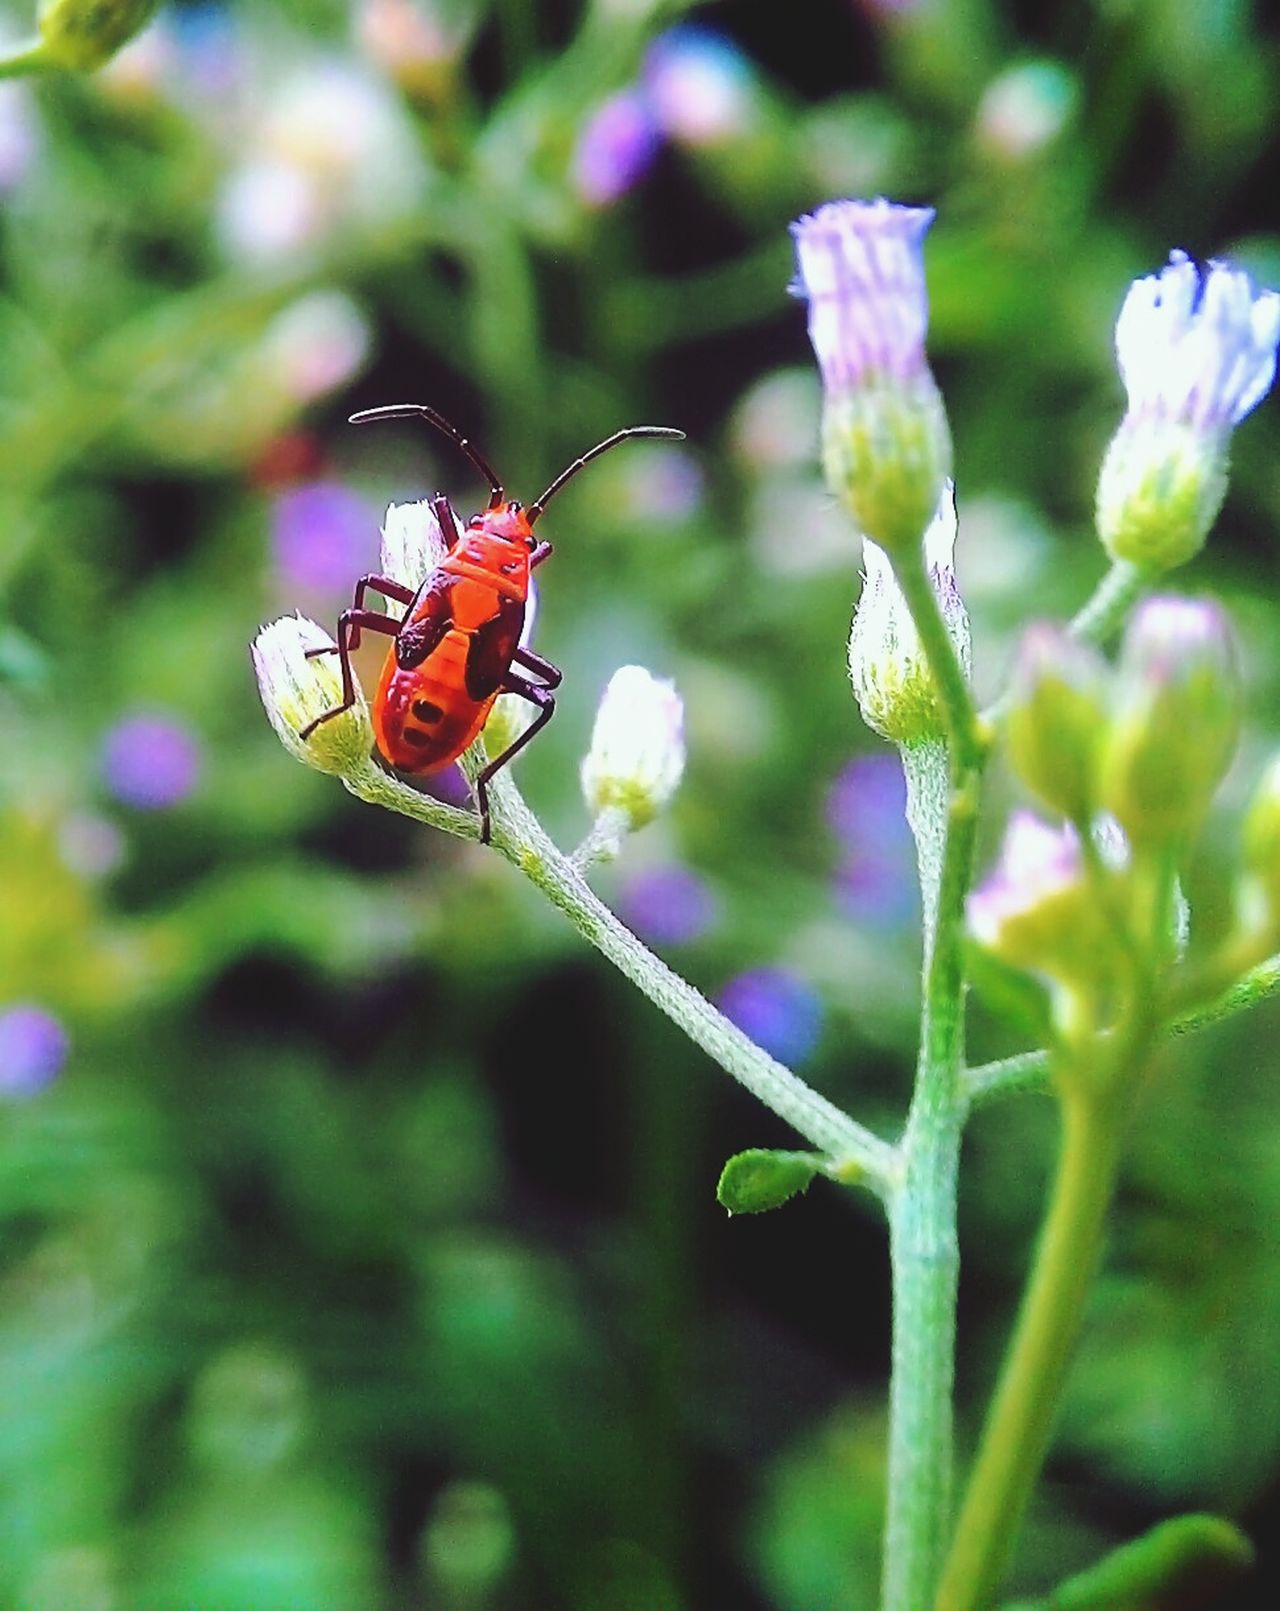 Red bug Insect Flower Nature Beauty In Nature One Animal Animal Themes Fragility Close-up Animals In The Wild Plant Outdoors Day Butterfly - Insect Animal Wildlife Green Color No People Freshness Pollination Hovering Macrophotography Macro Clique Macroworld Macro Beauty Macro_captures